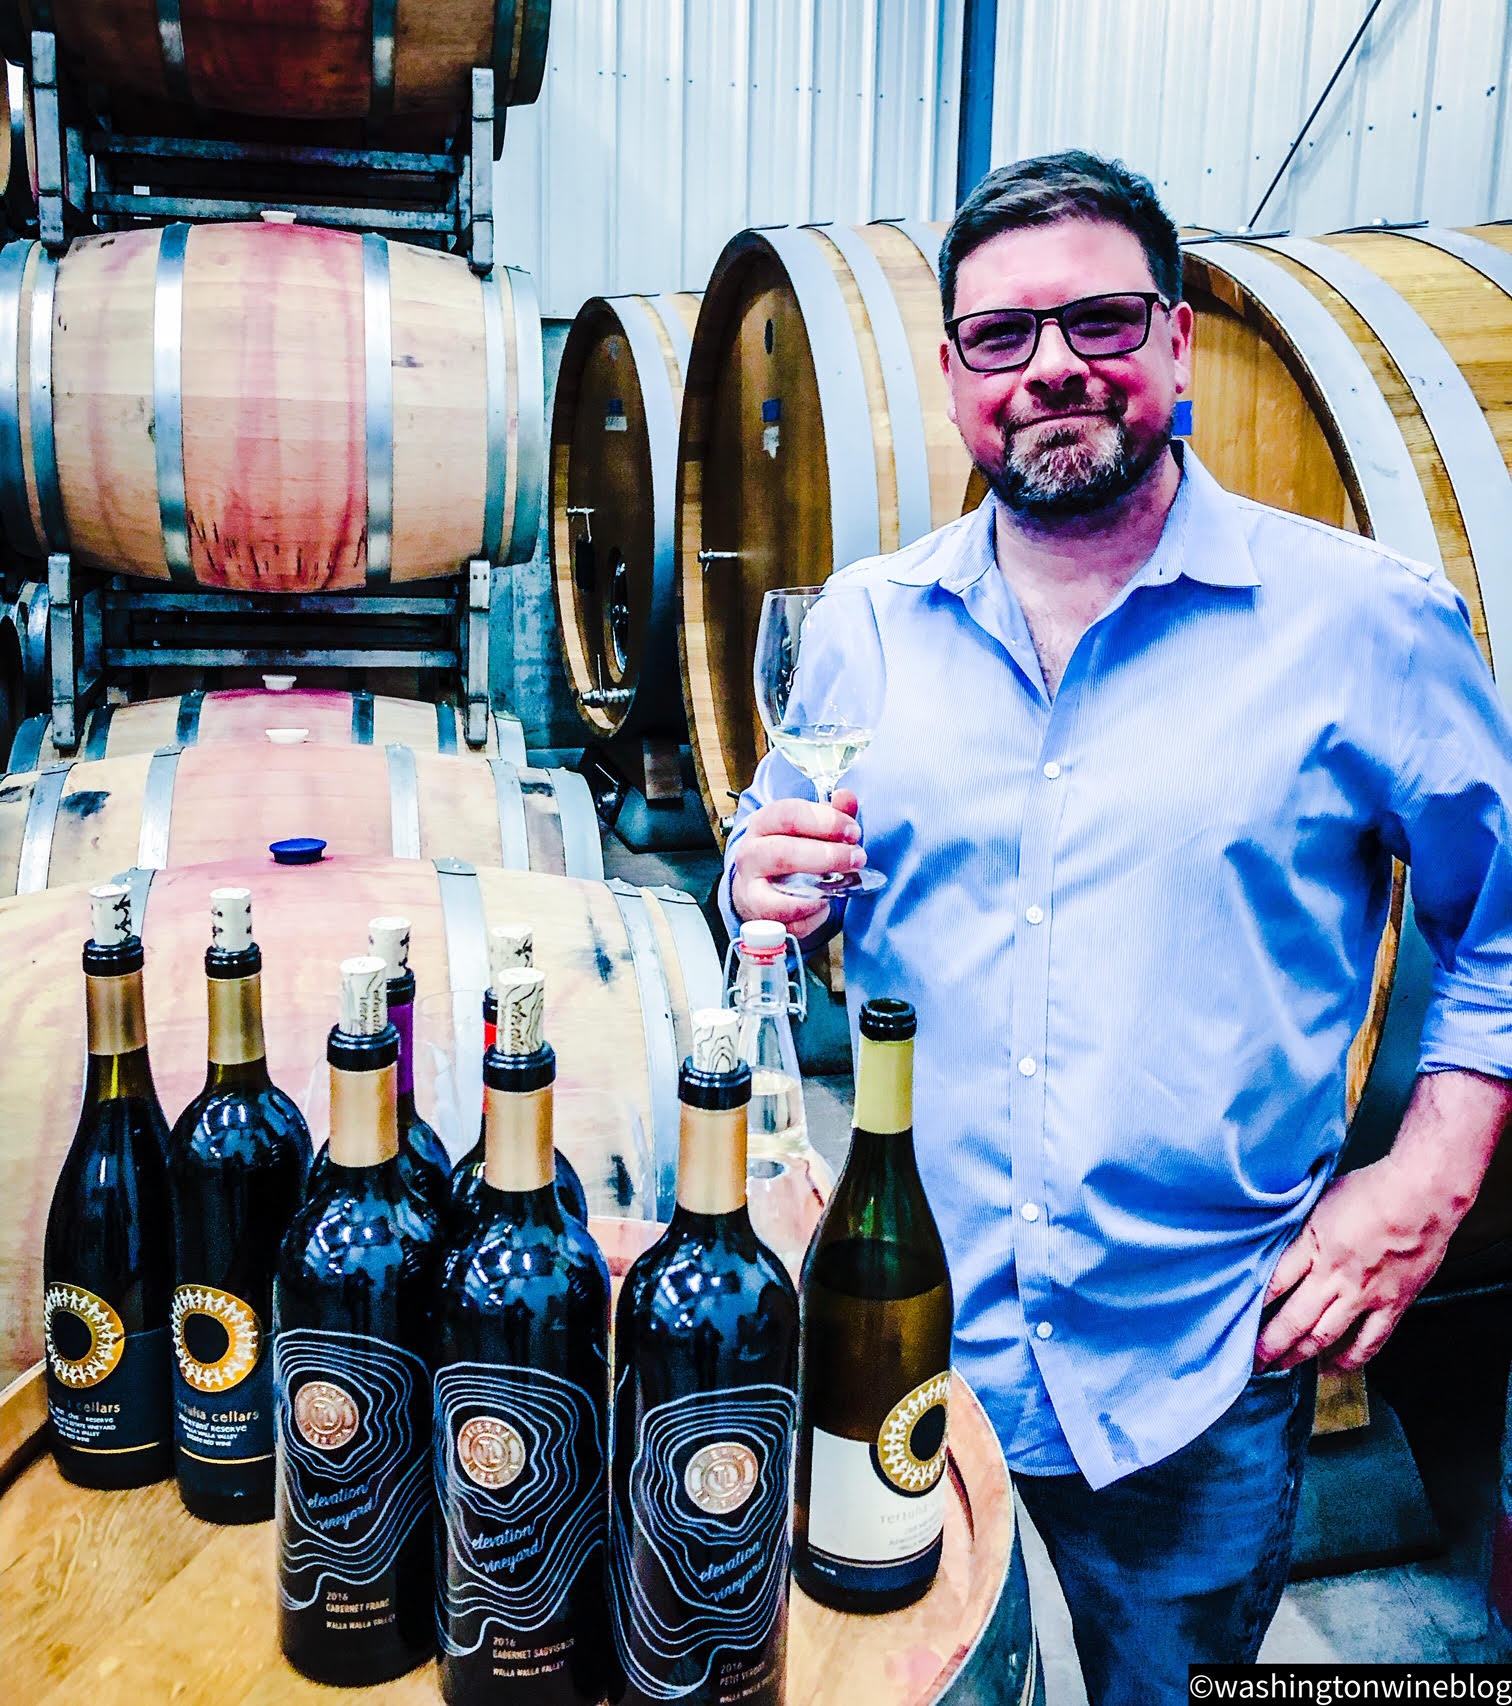 Ryan Raber has crafted some beautiful new wines for Tertulia Cellars.